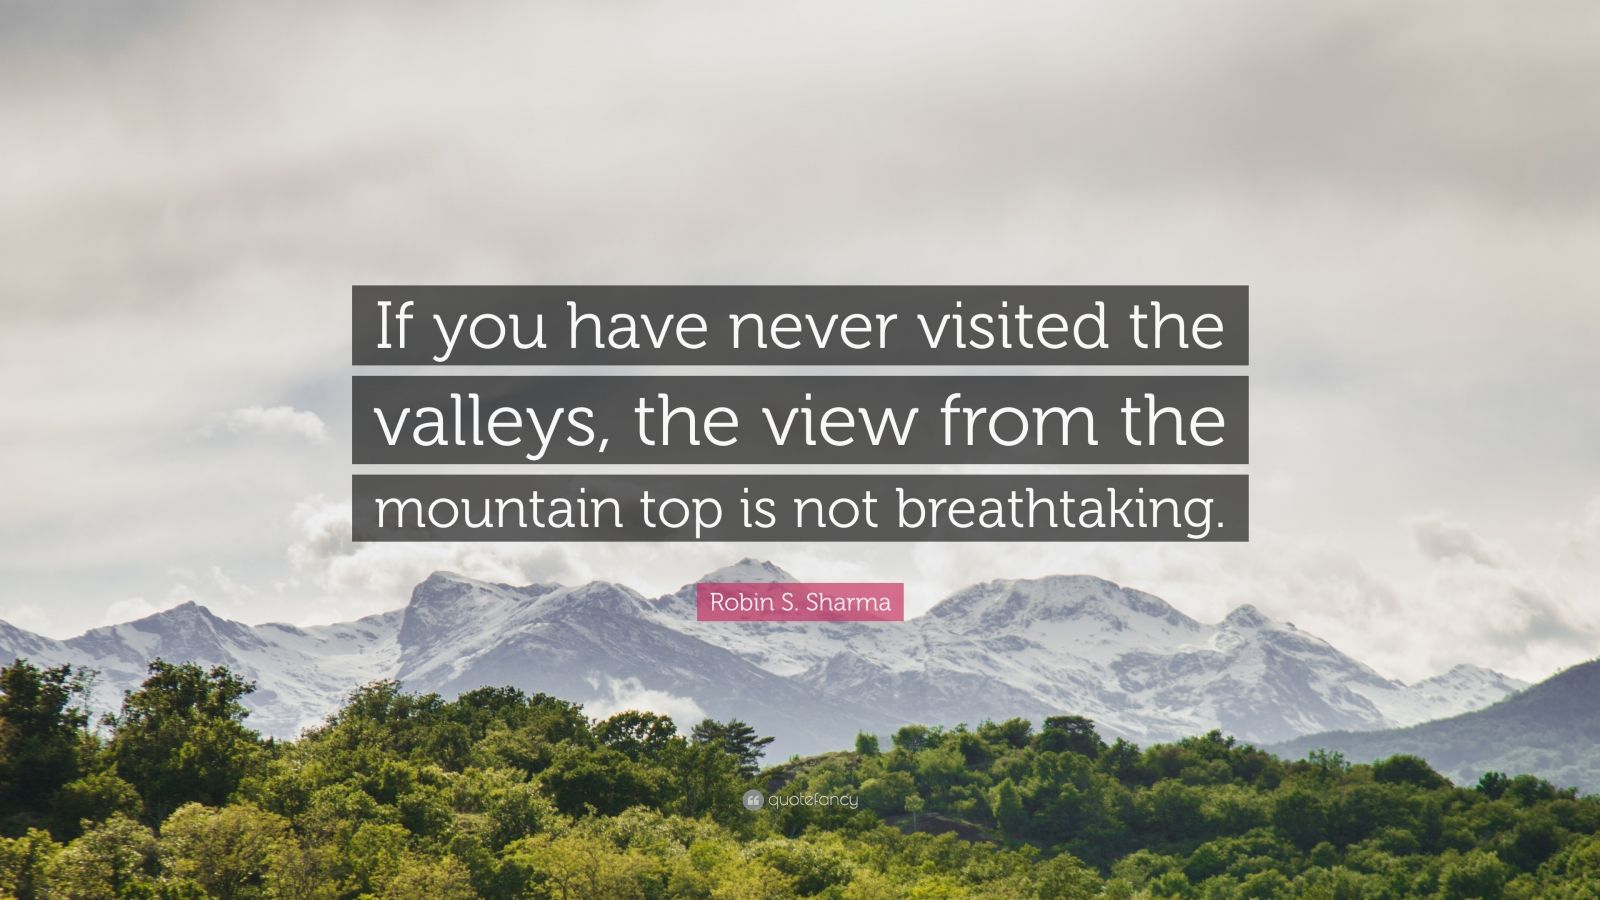 """Robin S. Sharma Quote: """"If you have never visited the valleys, the view from the mountain top is not breathtaking."""""""